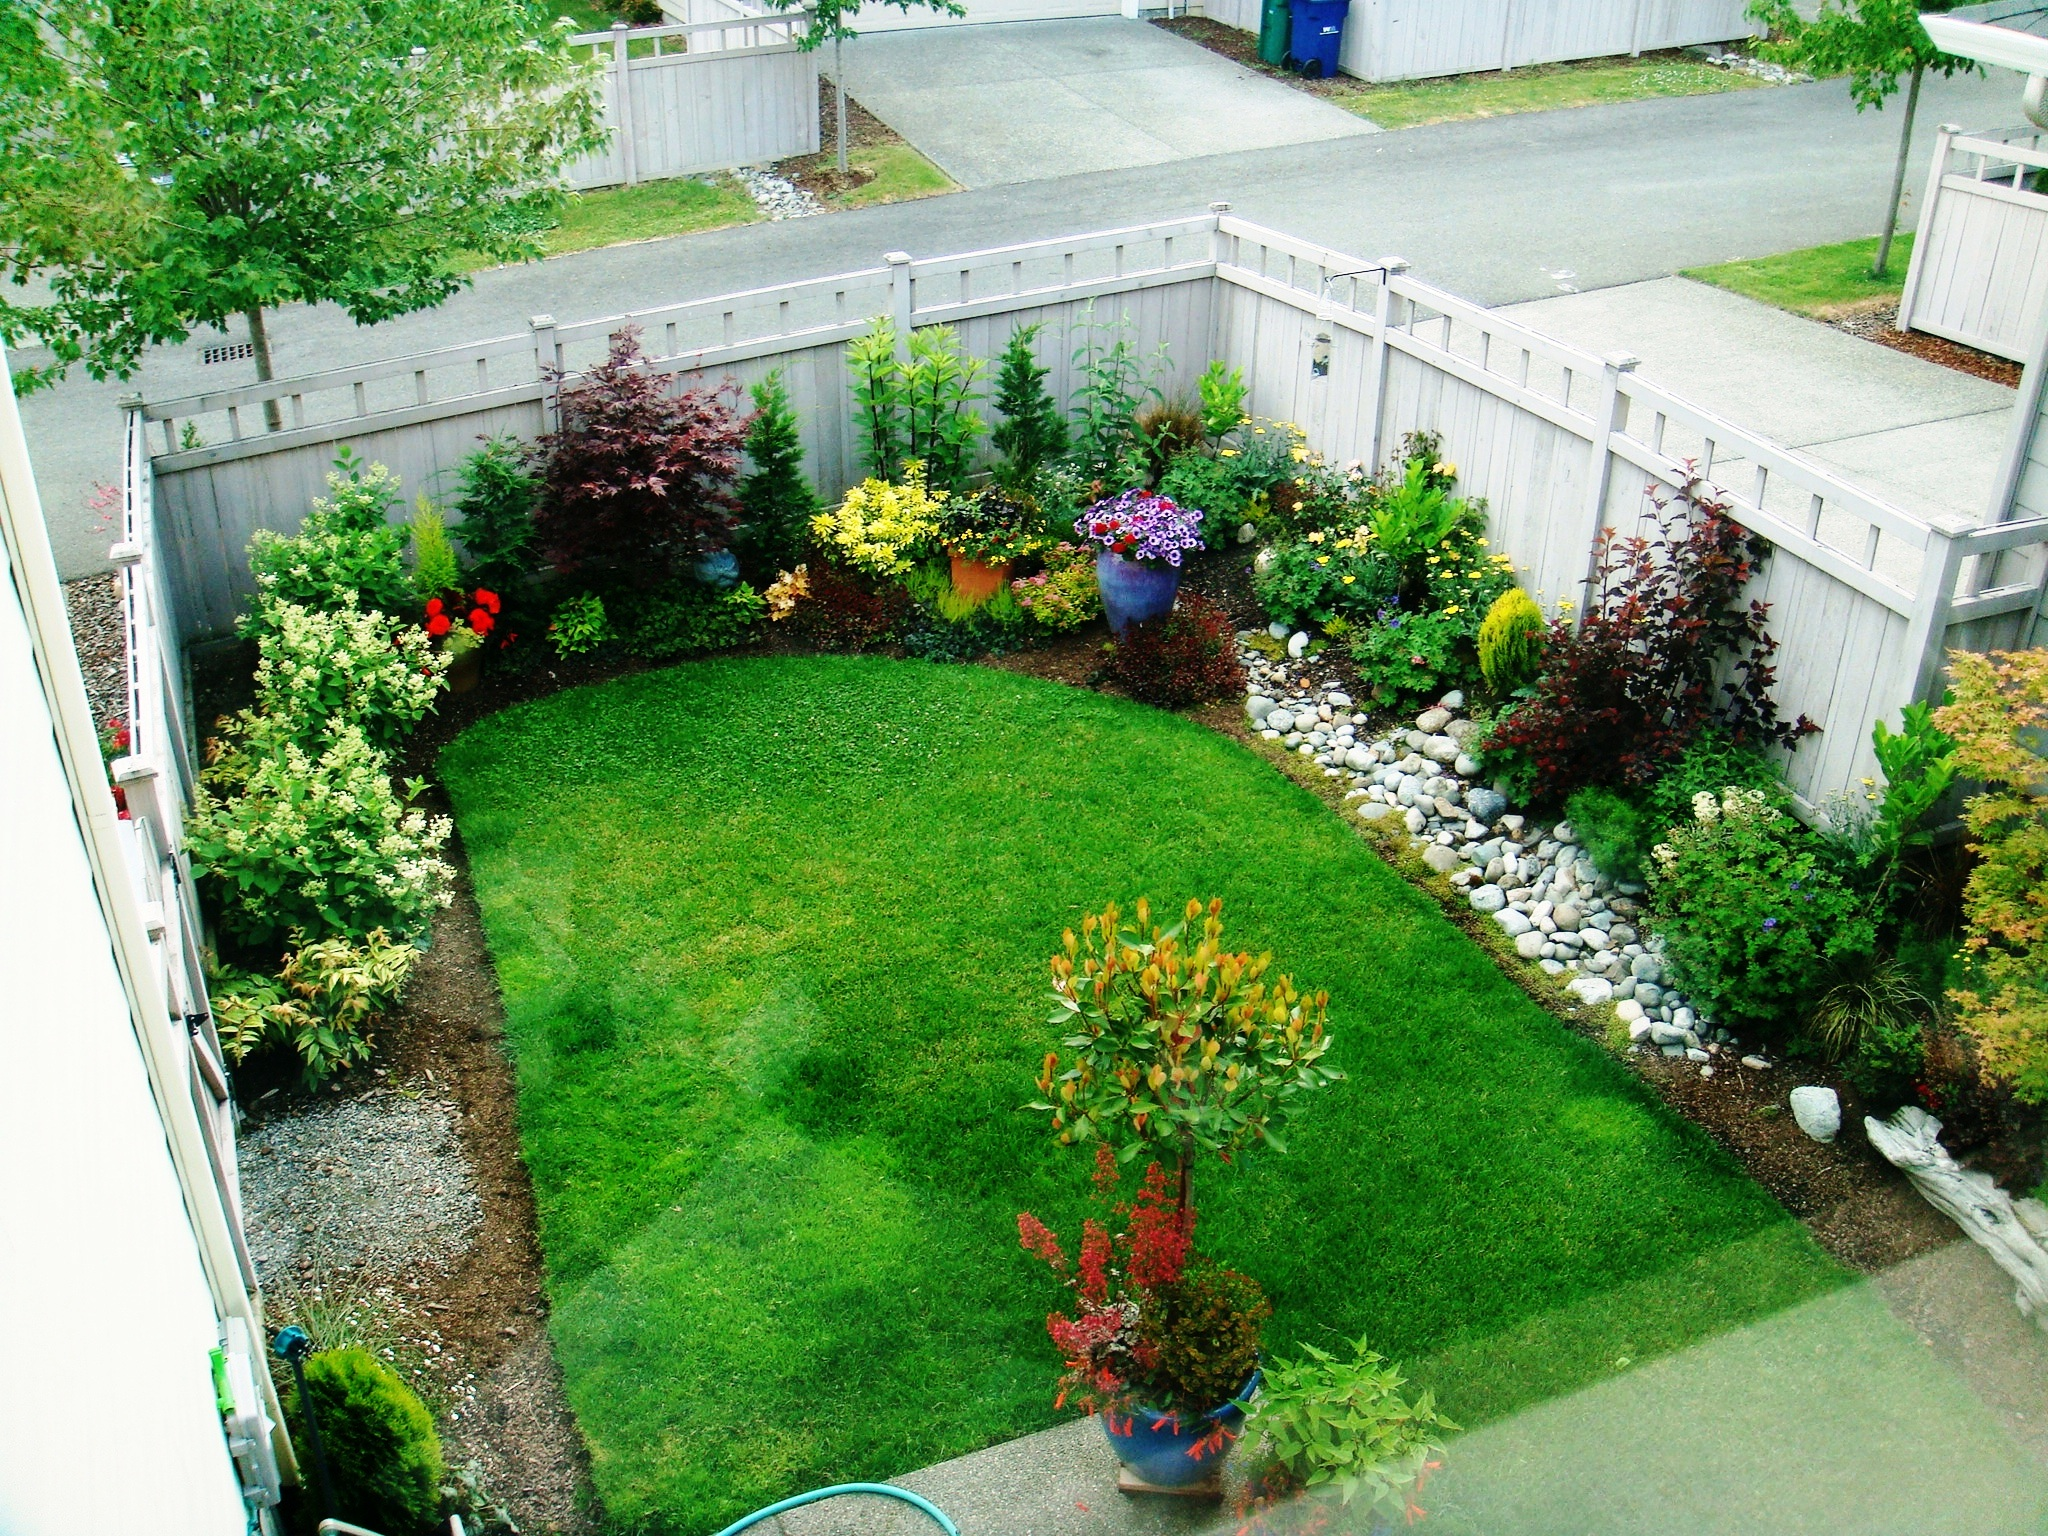 Remarkable Small Back Yard Garden Design Ideas 2048 x 1536 · 1500 kB · jpeg